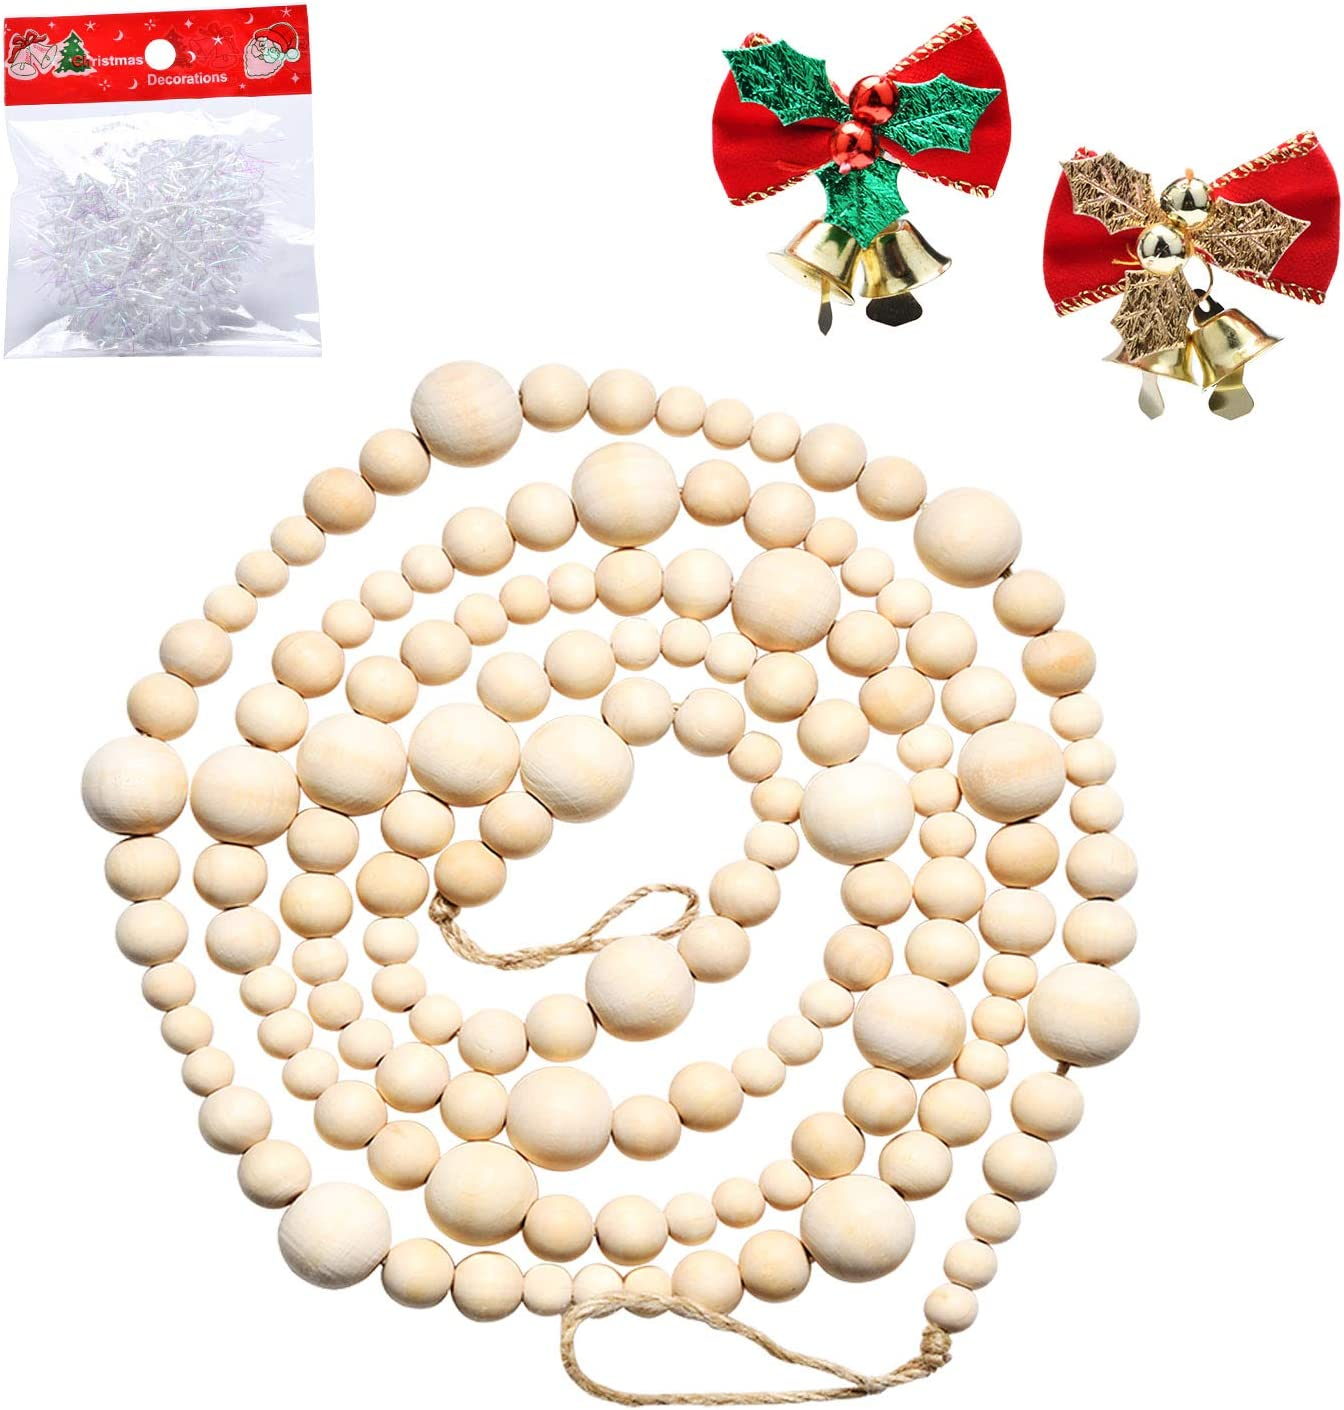 Abitoncc 7.2ft Wooden Beaded Garland Christmas Wood Bead Garland Farmhouse Home Decor Rustic Country Natural Holiday Garland Wall Hanging Prayer Beads(Wood Color)